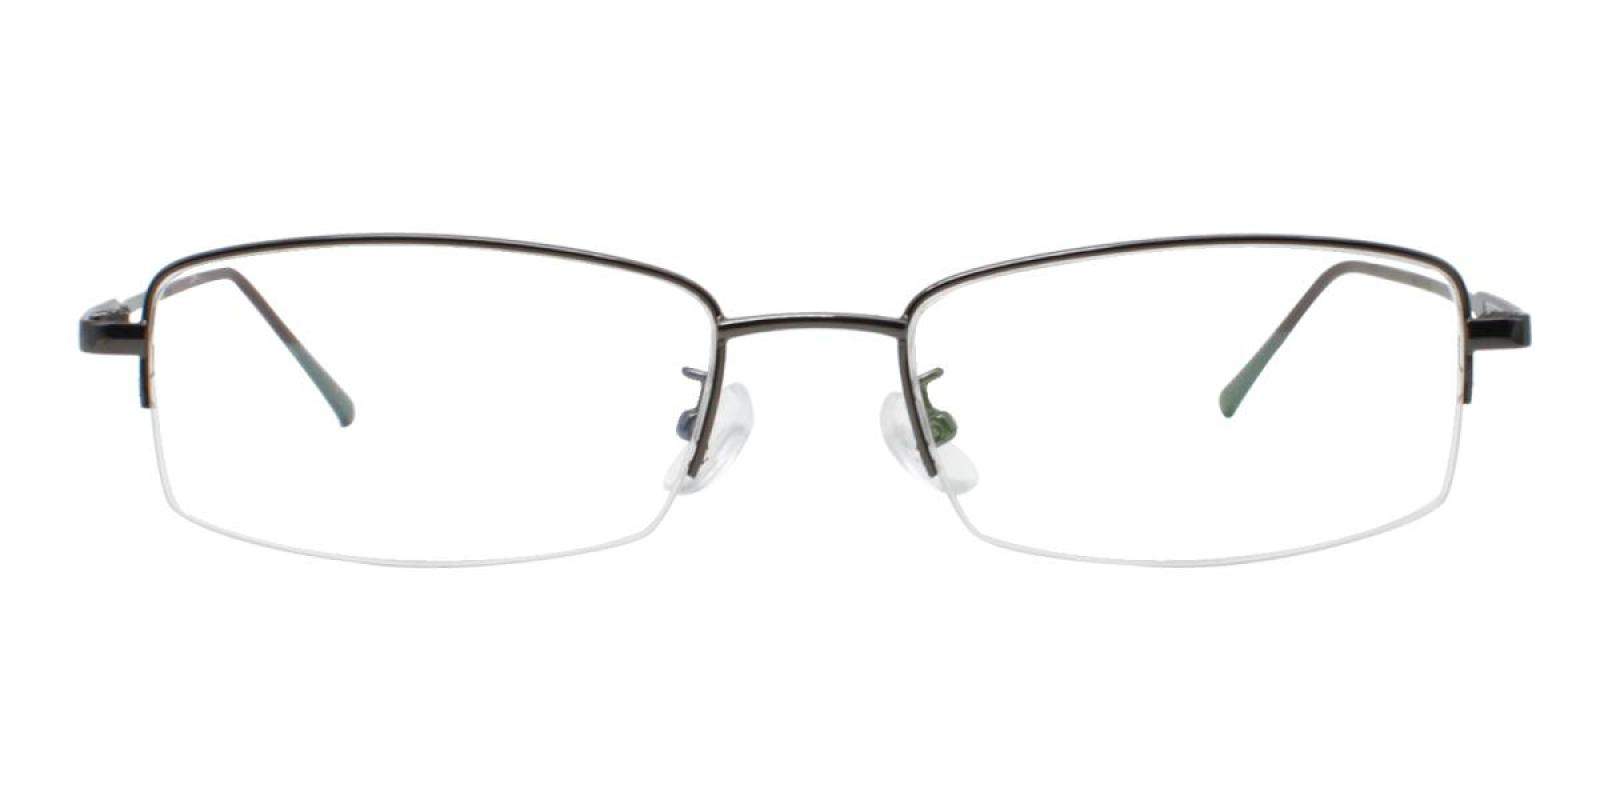 Germantown-Gun-Rectangle-Metal-Eyeglasses-additional2